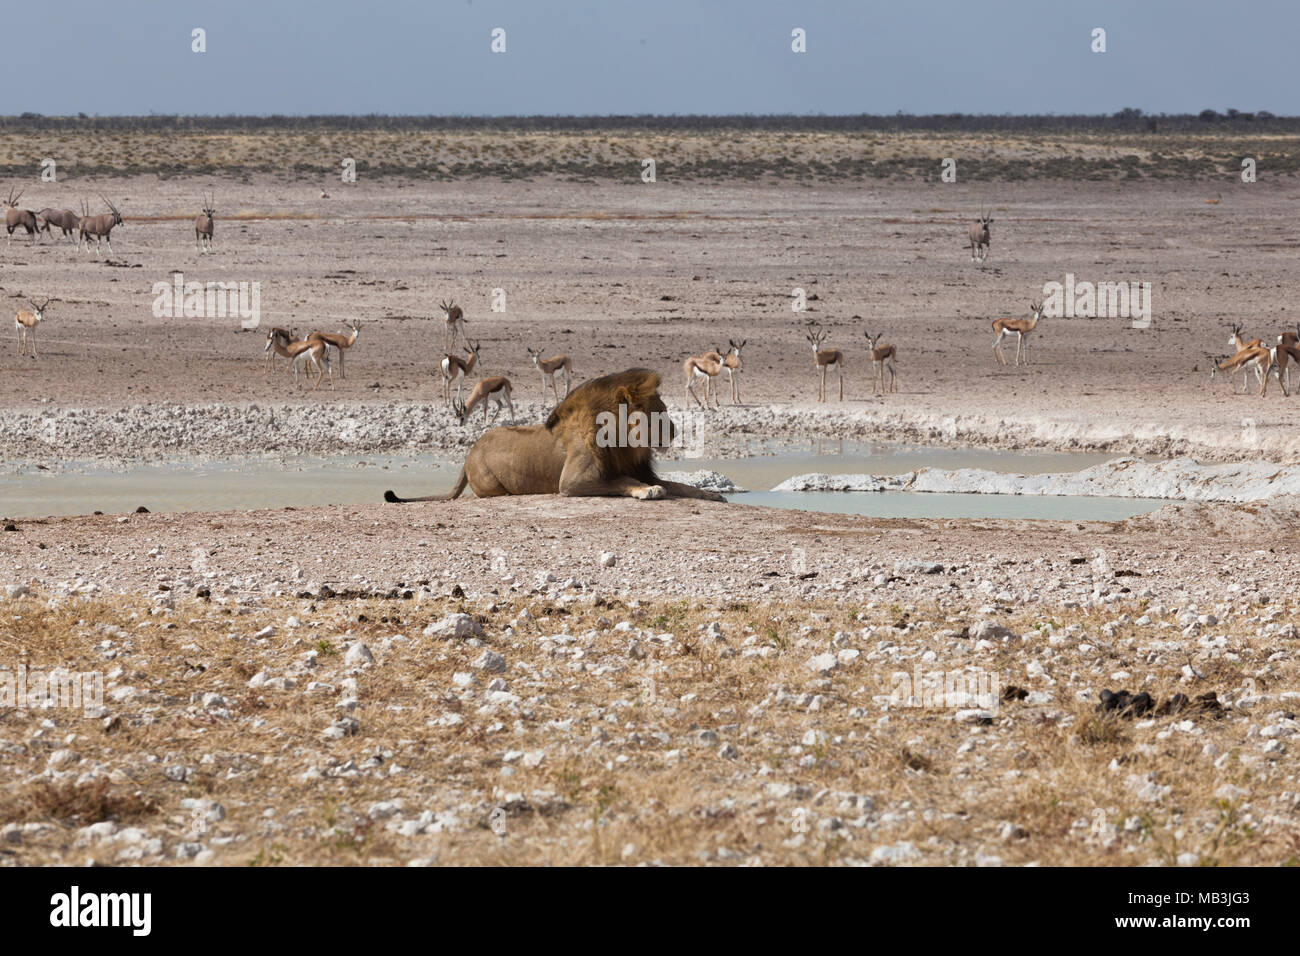 Lions in Etosha National Park, Namibia Stock Photo